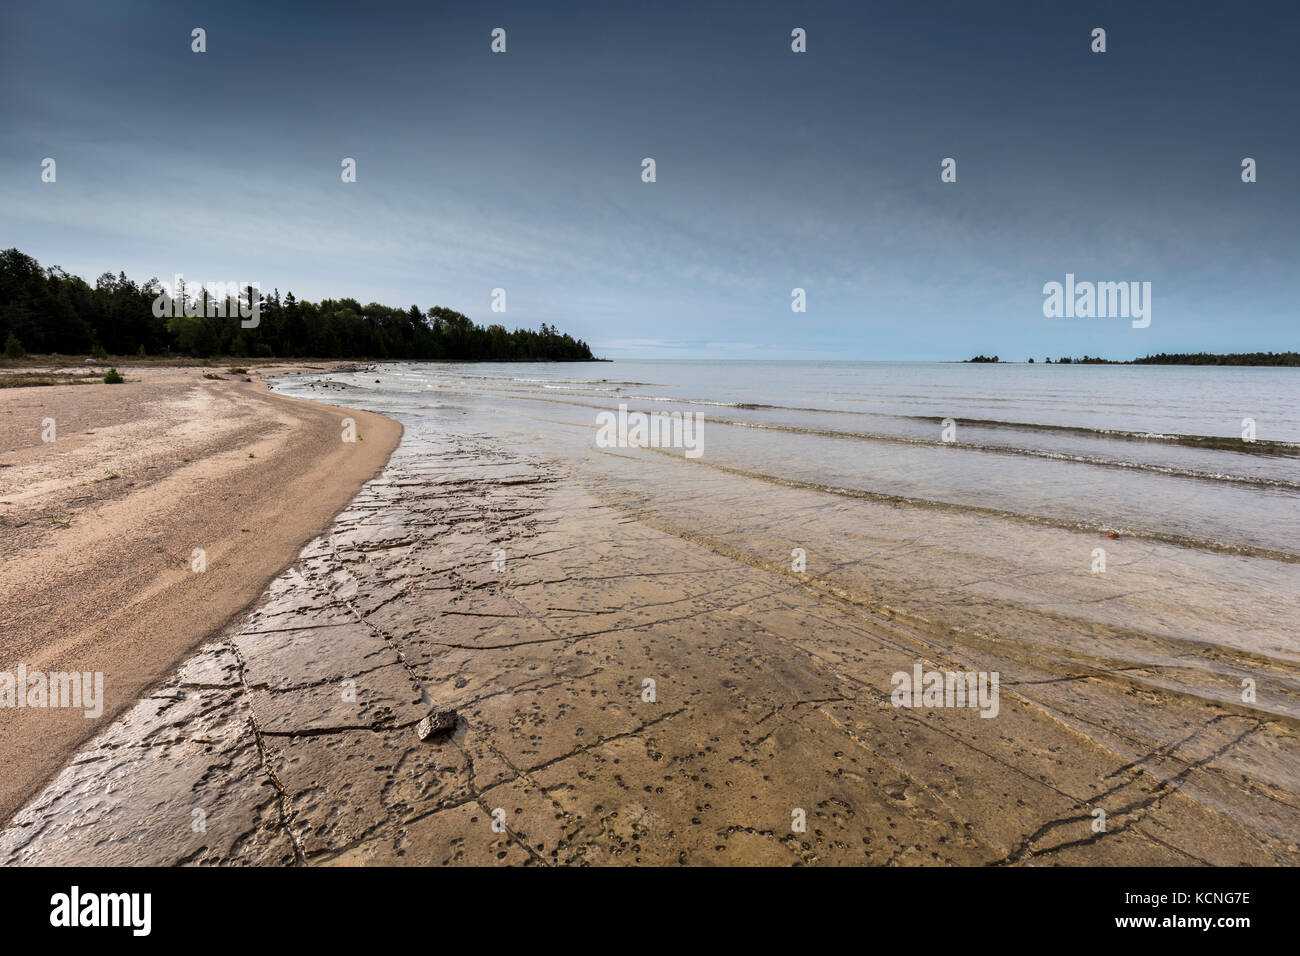 Shores of Misery Bay in Misery Bay Provincial Park, Manitoulin Island, Ontario, Canada Stock Photo